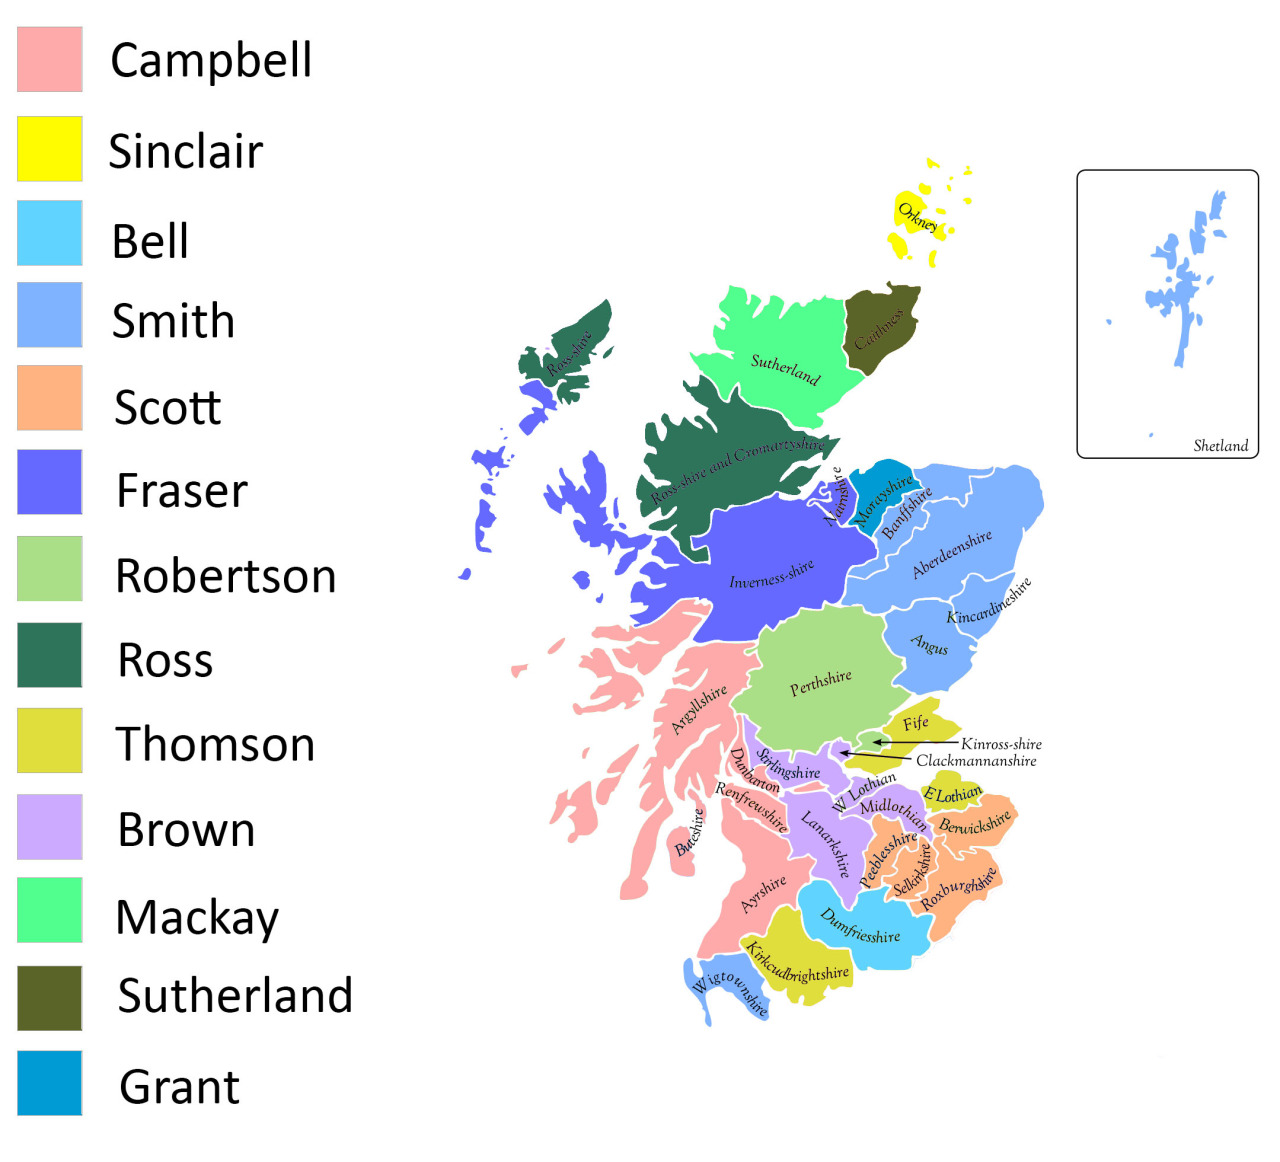 The most common surname in Scotland